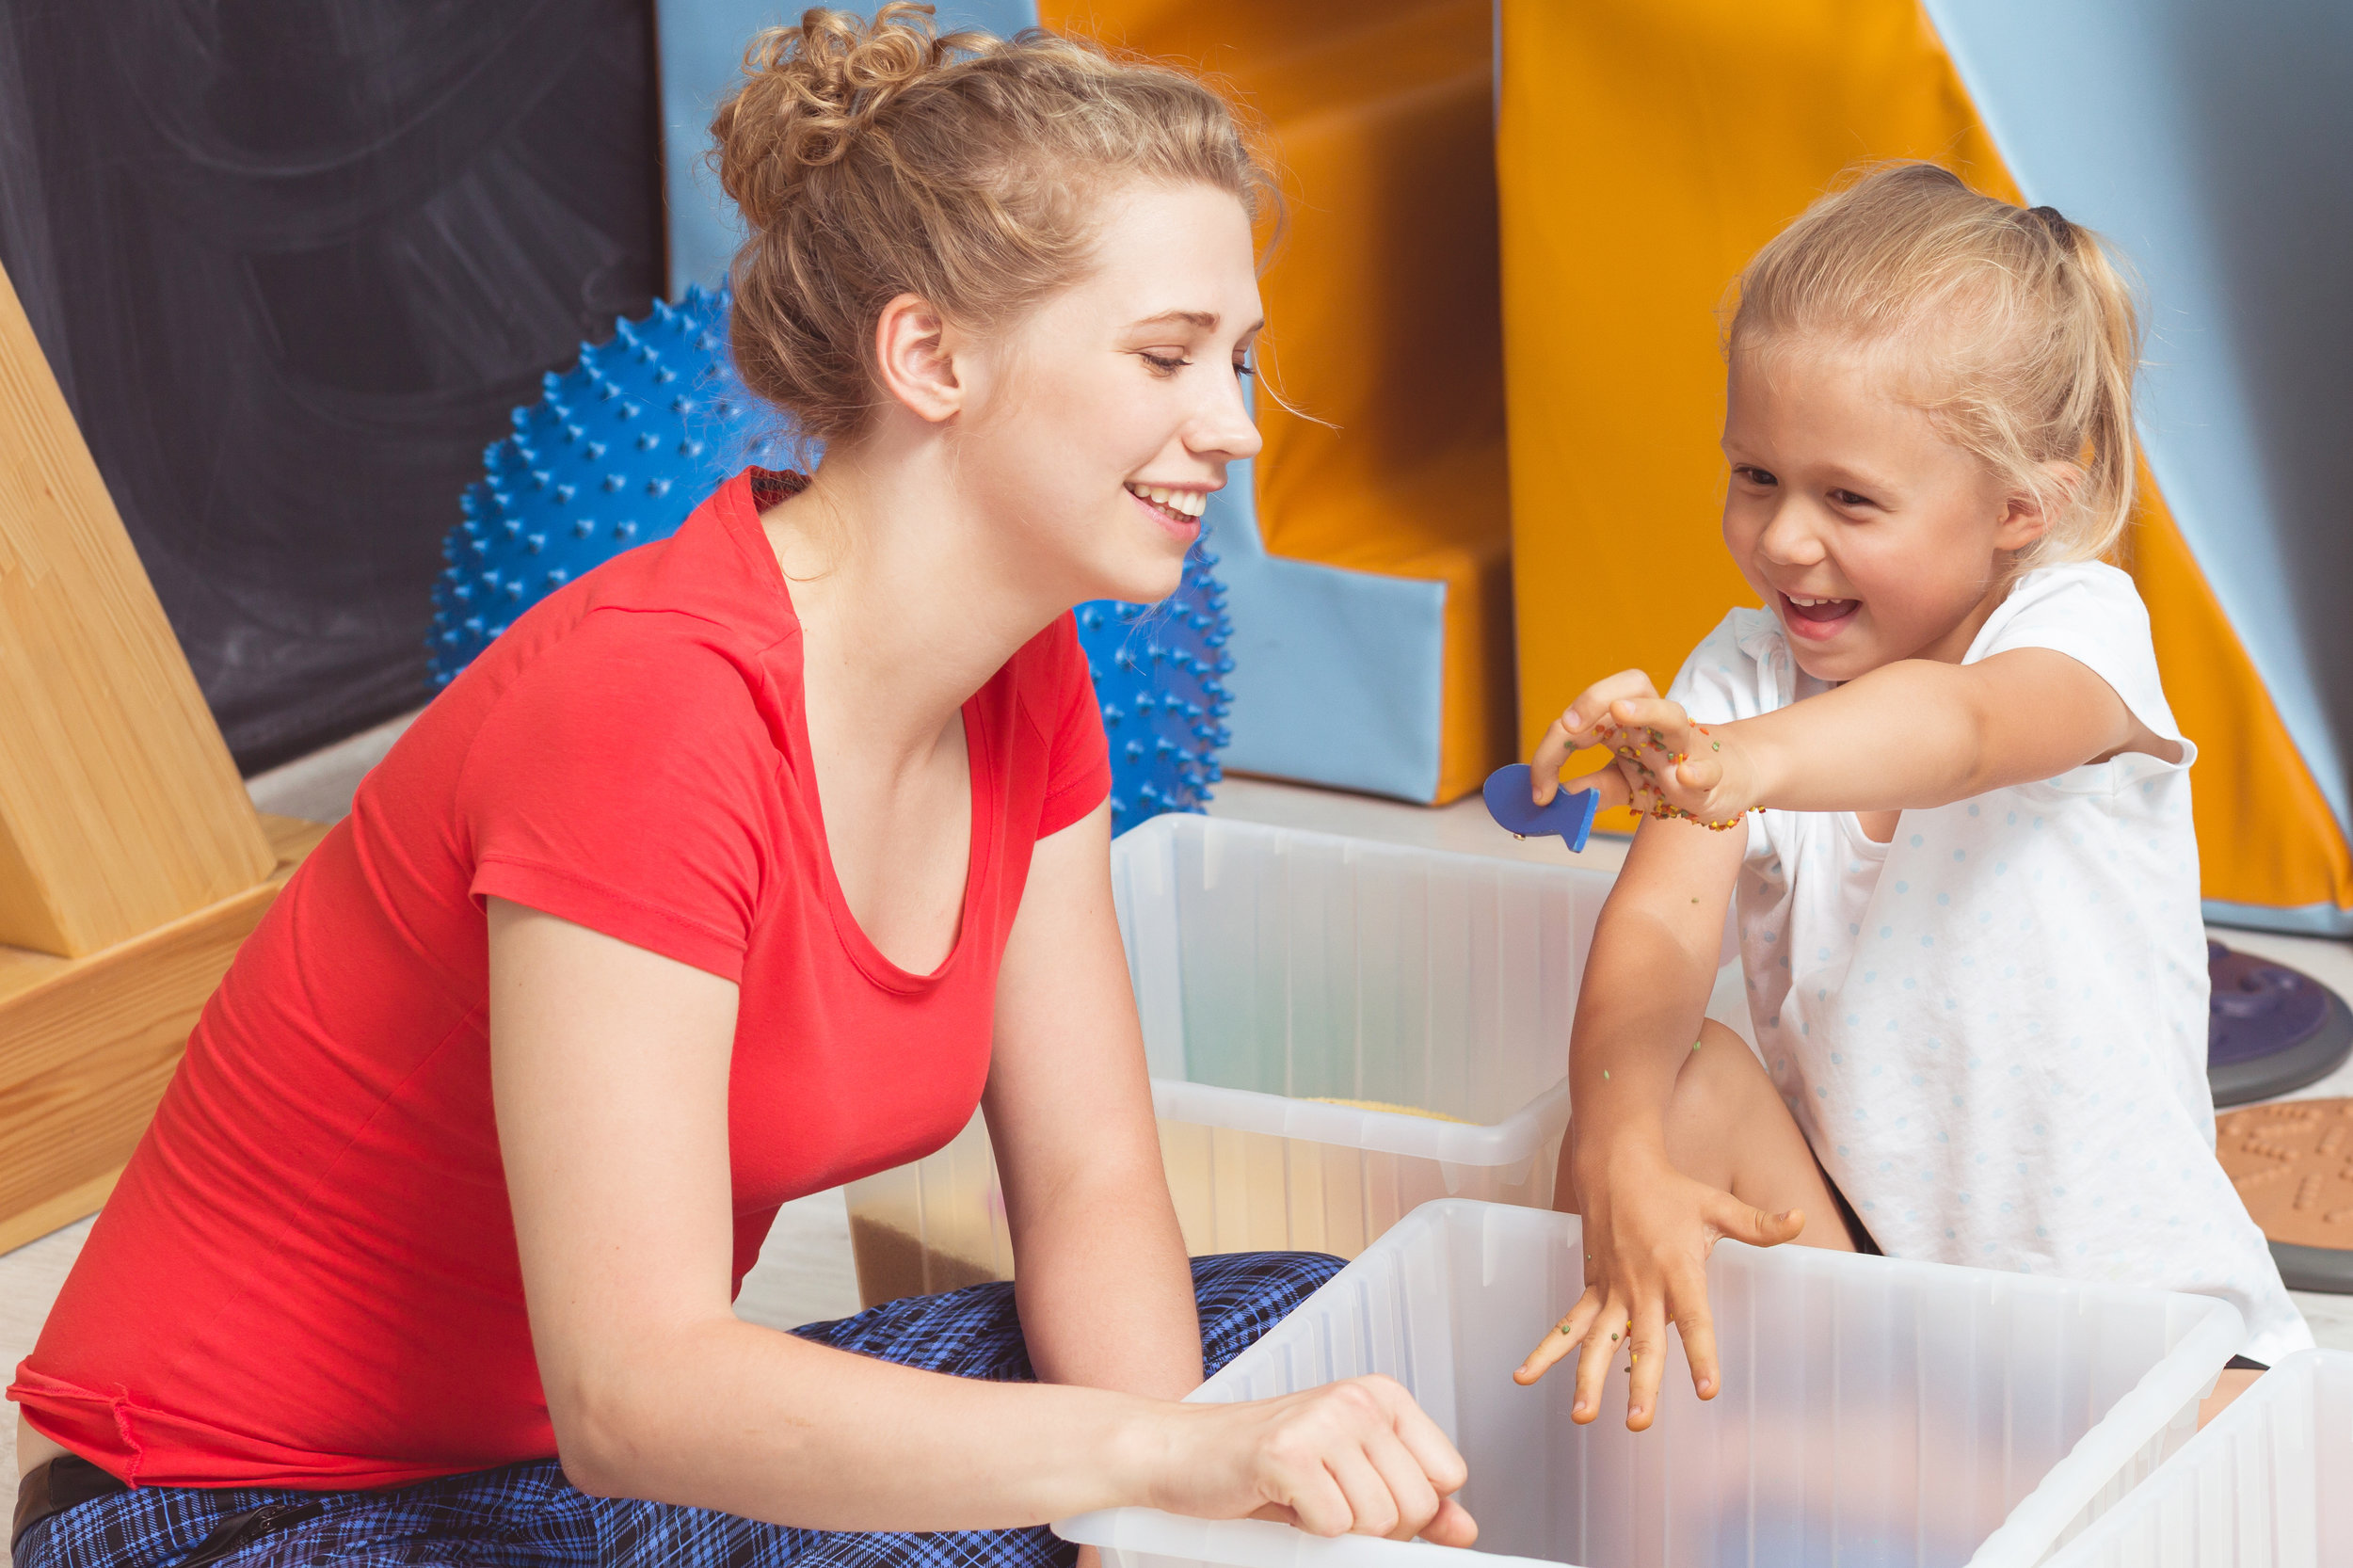 photodune-19099131-child-searching-for-objects-on-sensory-integration-class-l.jpg